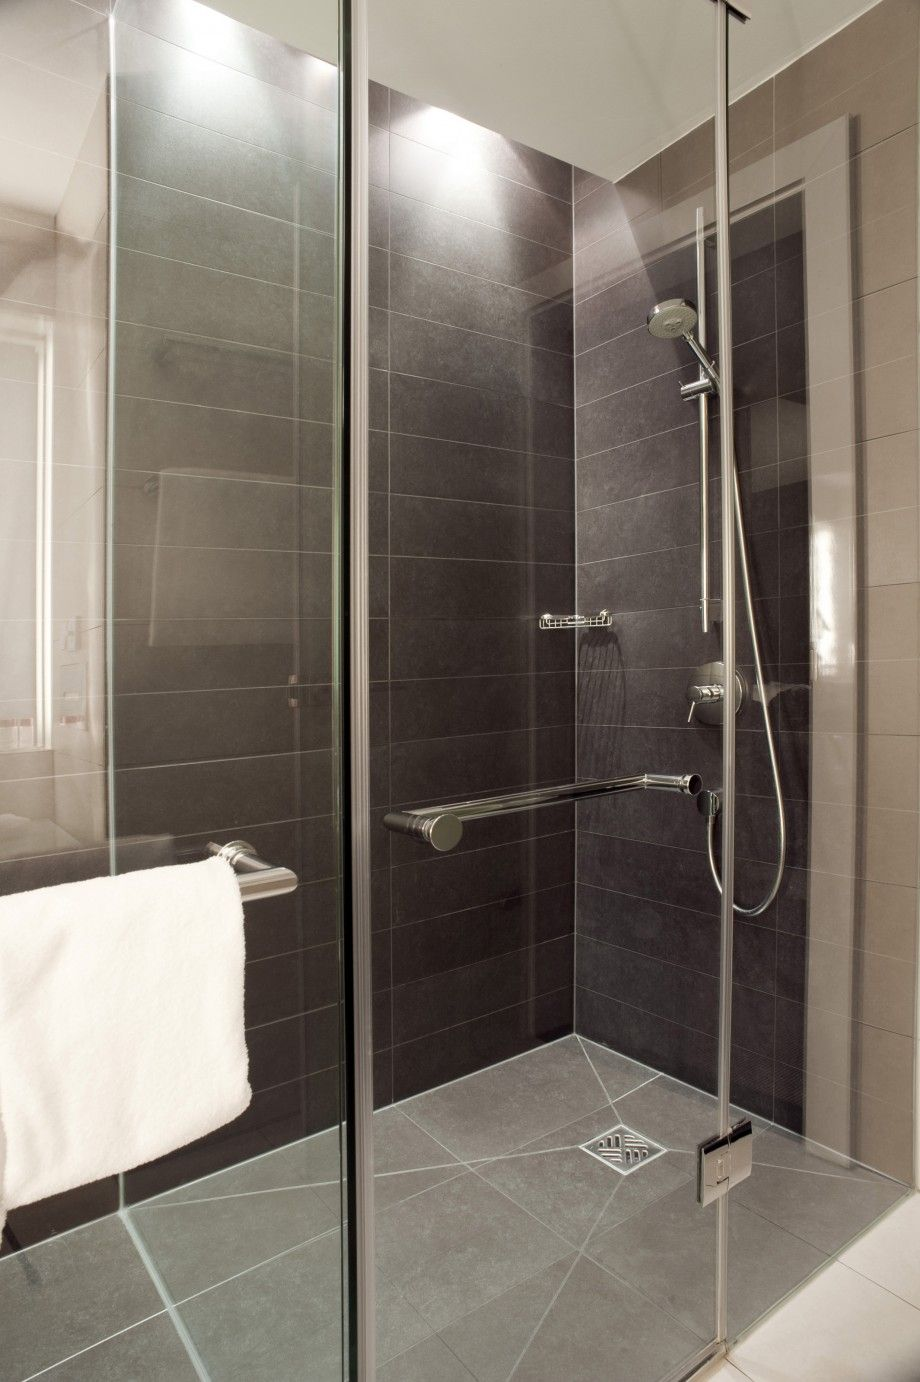 Bathroom Glass Shower Cubicle | Bathroom ideas | Pinterest | Shower ...